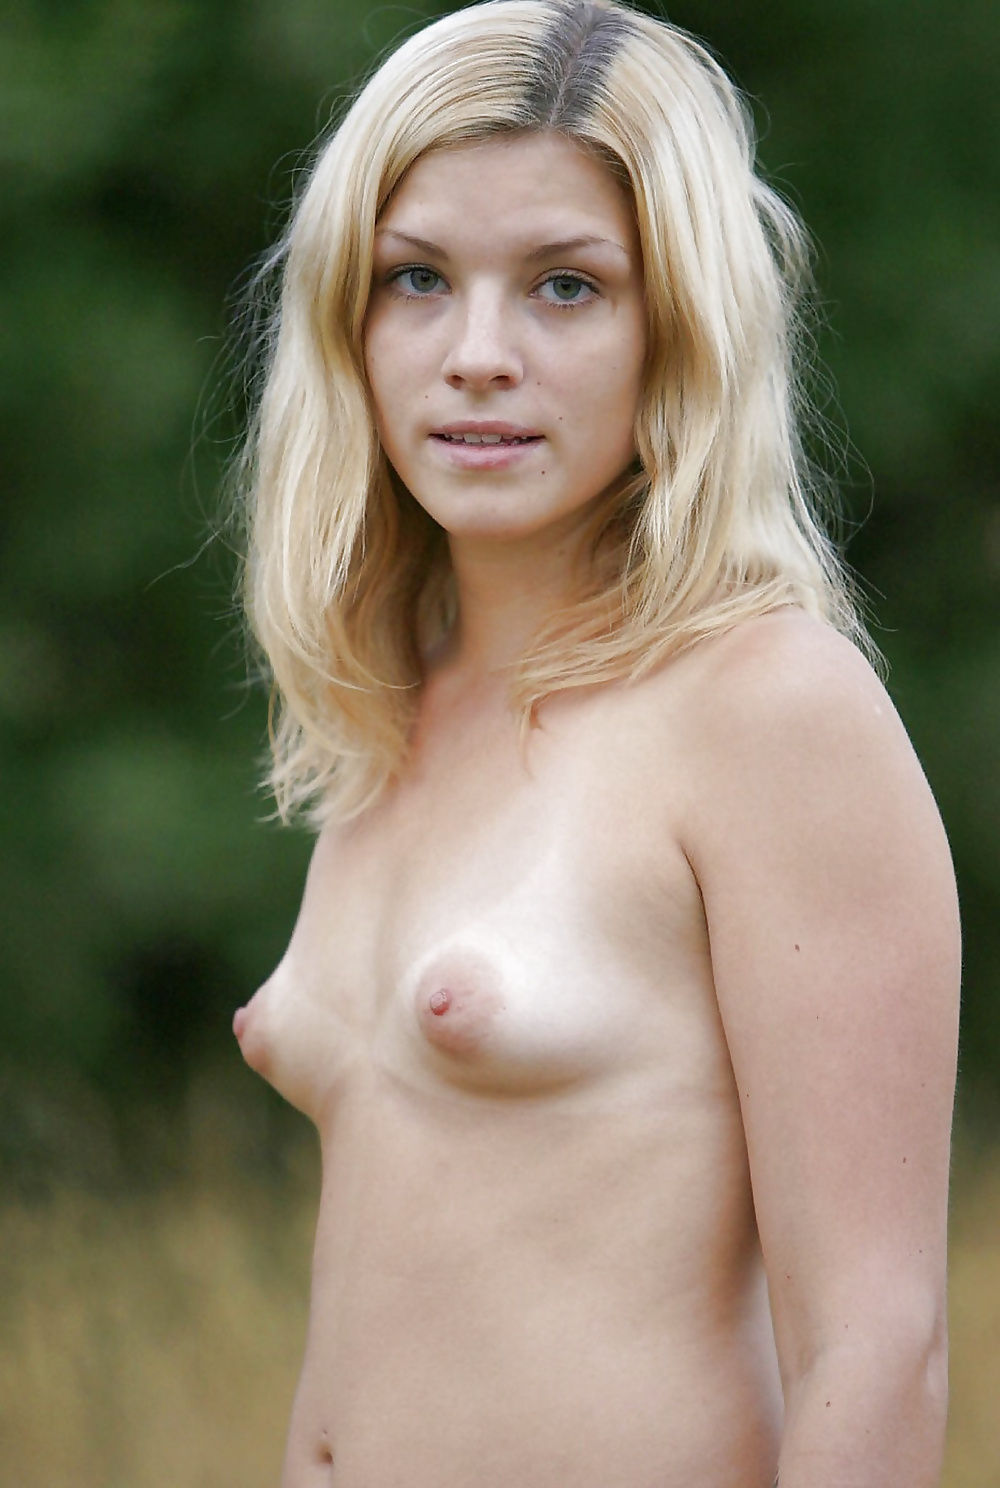 Amazing hardcore nipples young blonde nude